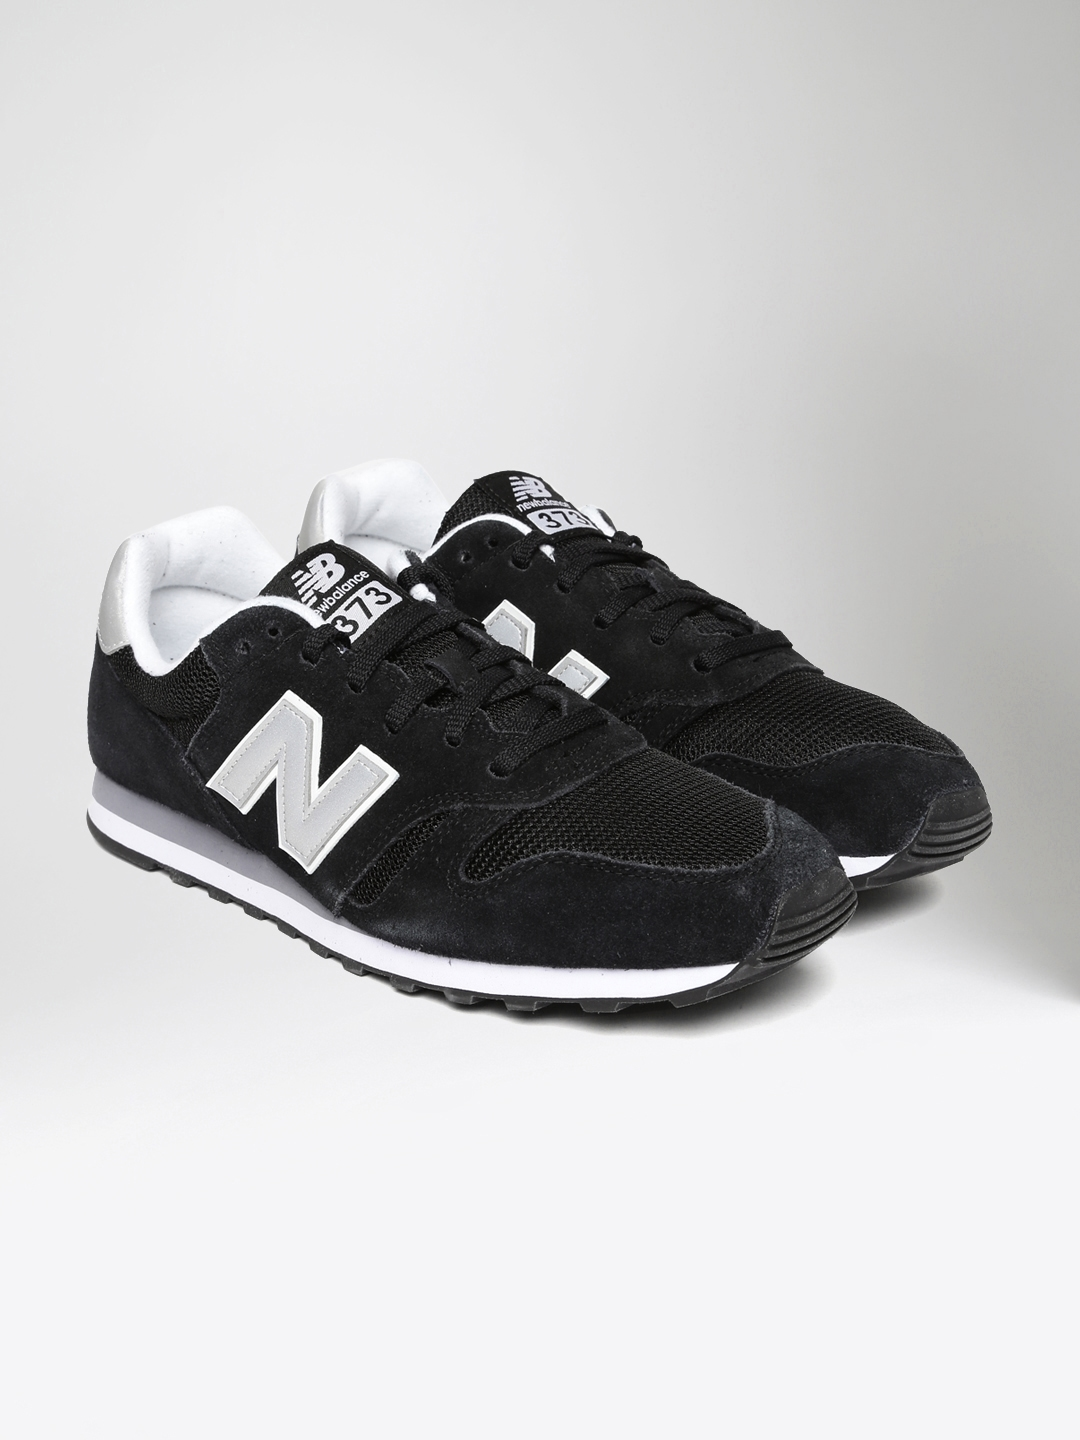 64e9beebfa428 Buy New Balance Men Black 373 Sneakers - Casual Shoes for Men ...